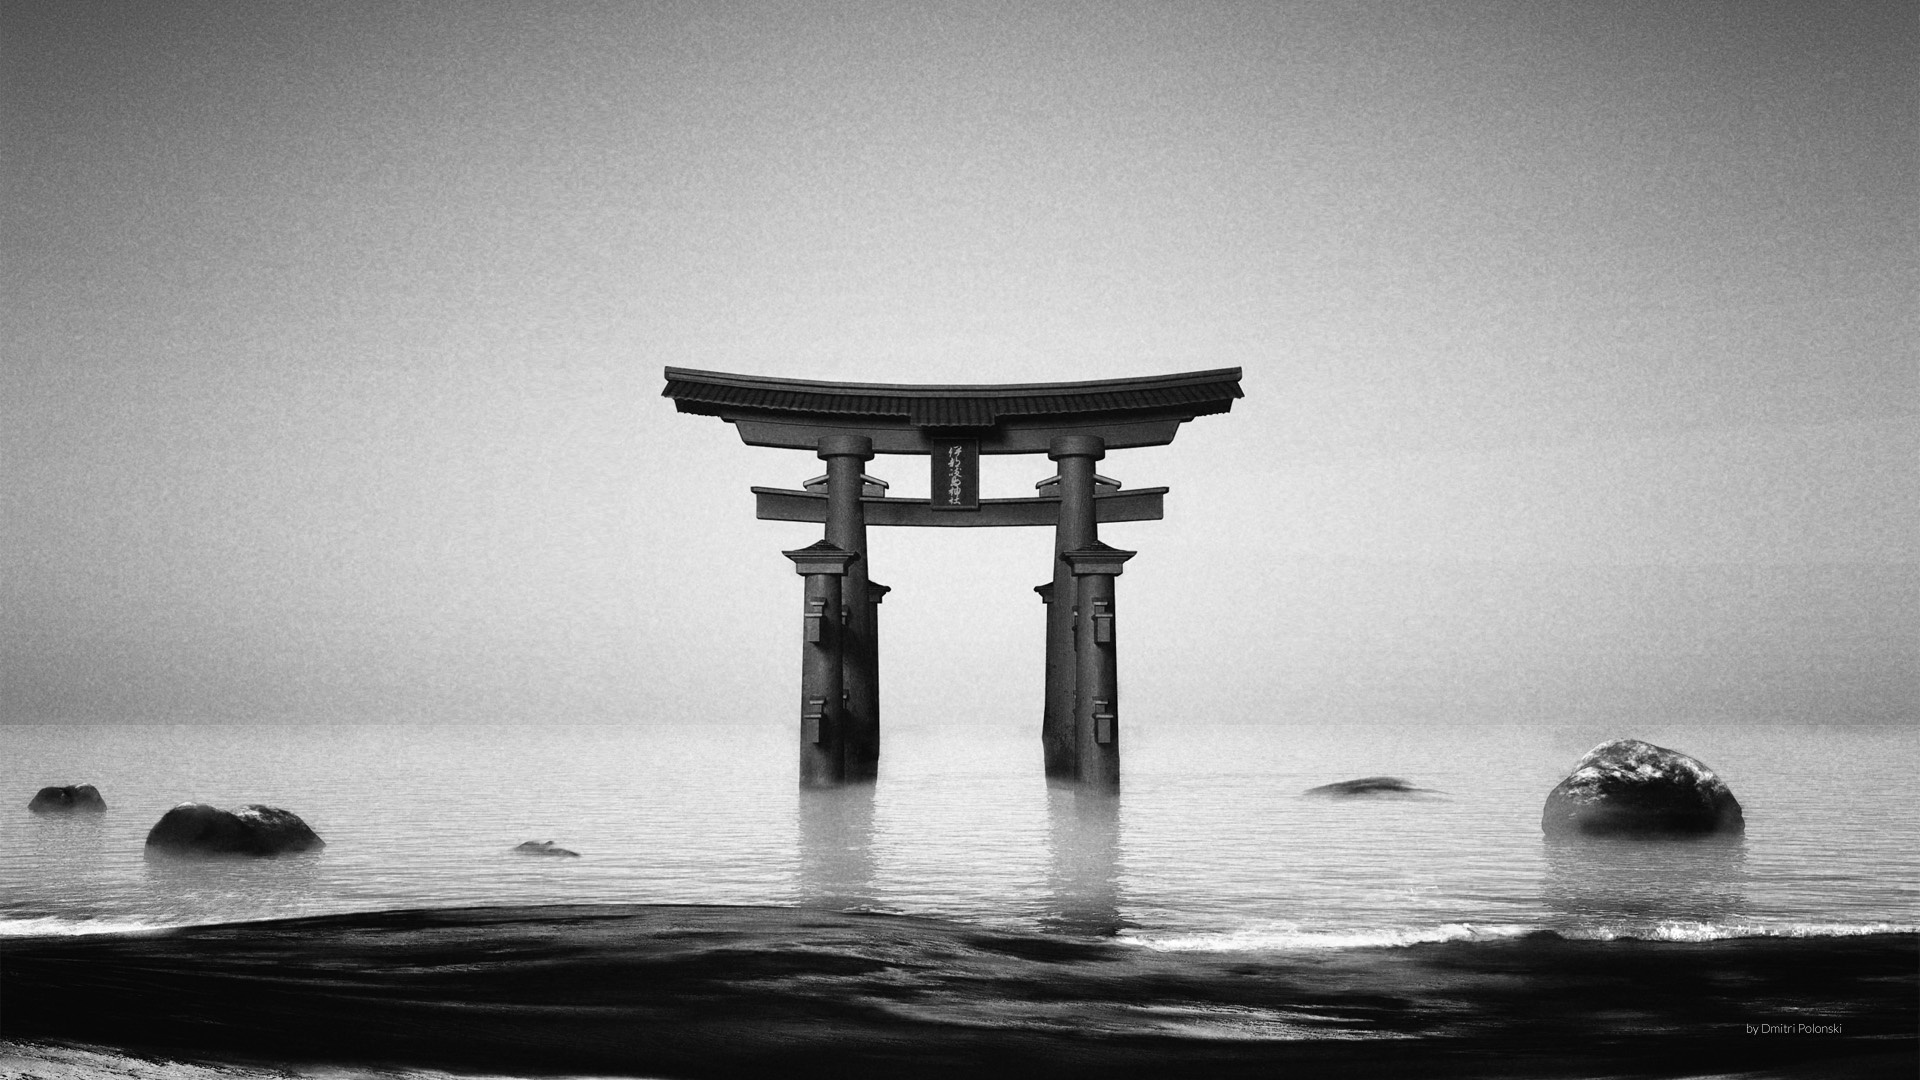 Torii Gate wallpaper for computer